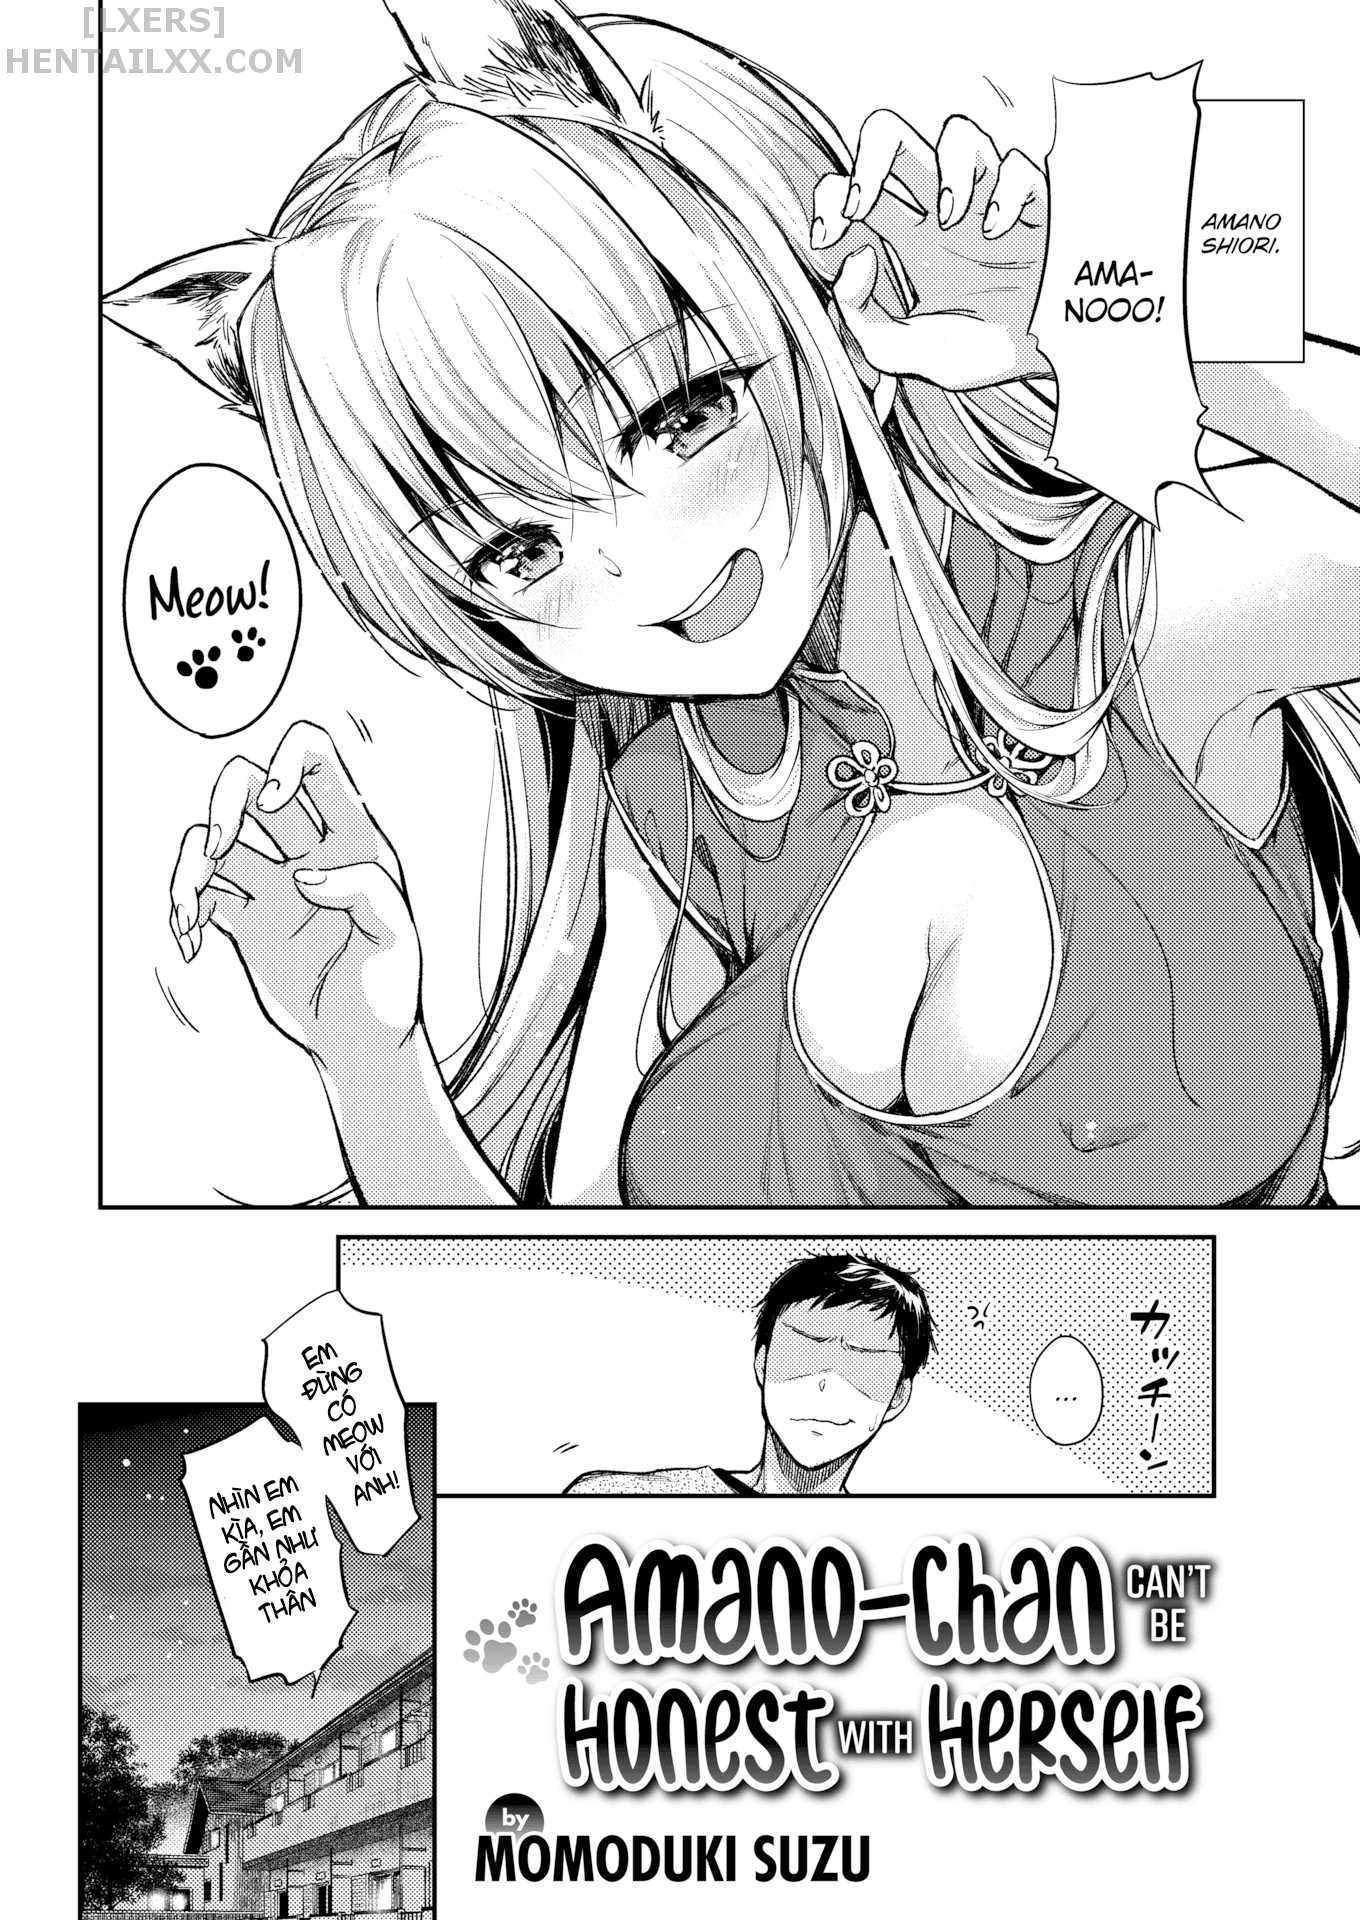 002 Amano-chan Can't Be Honest With Herself  - hentaicube.net - Truyện tranh hentai online